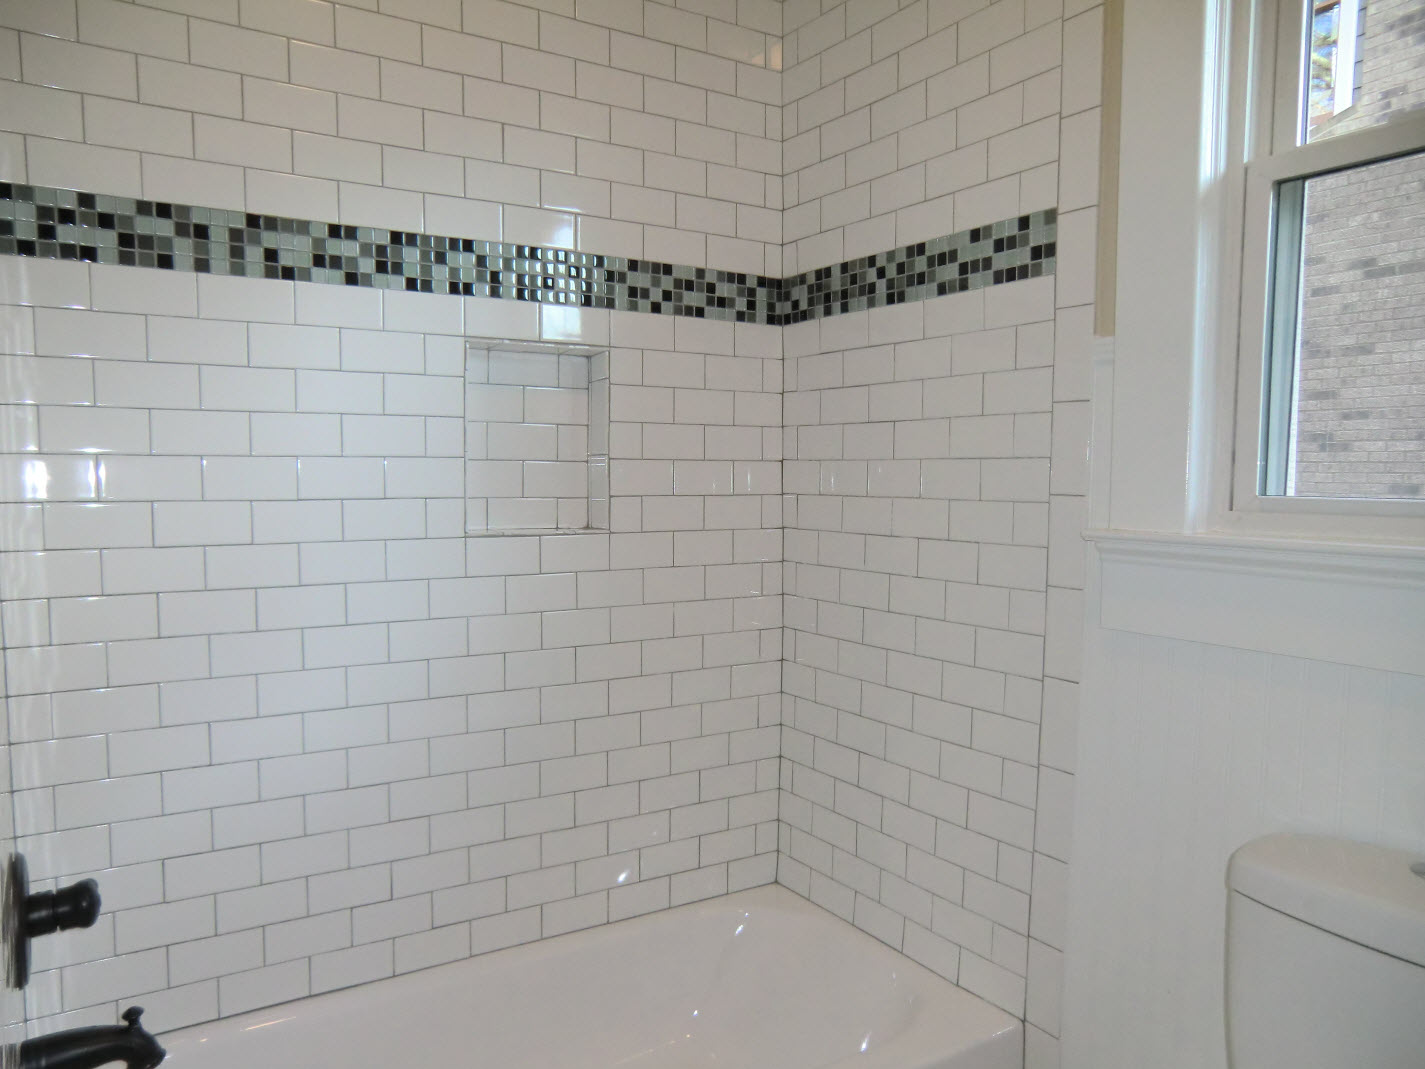 Guest Bath Tub With Subway Tile Surround Jpg 1425 215 1069